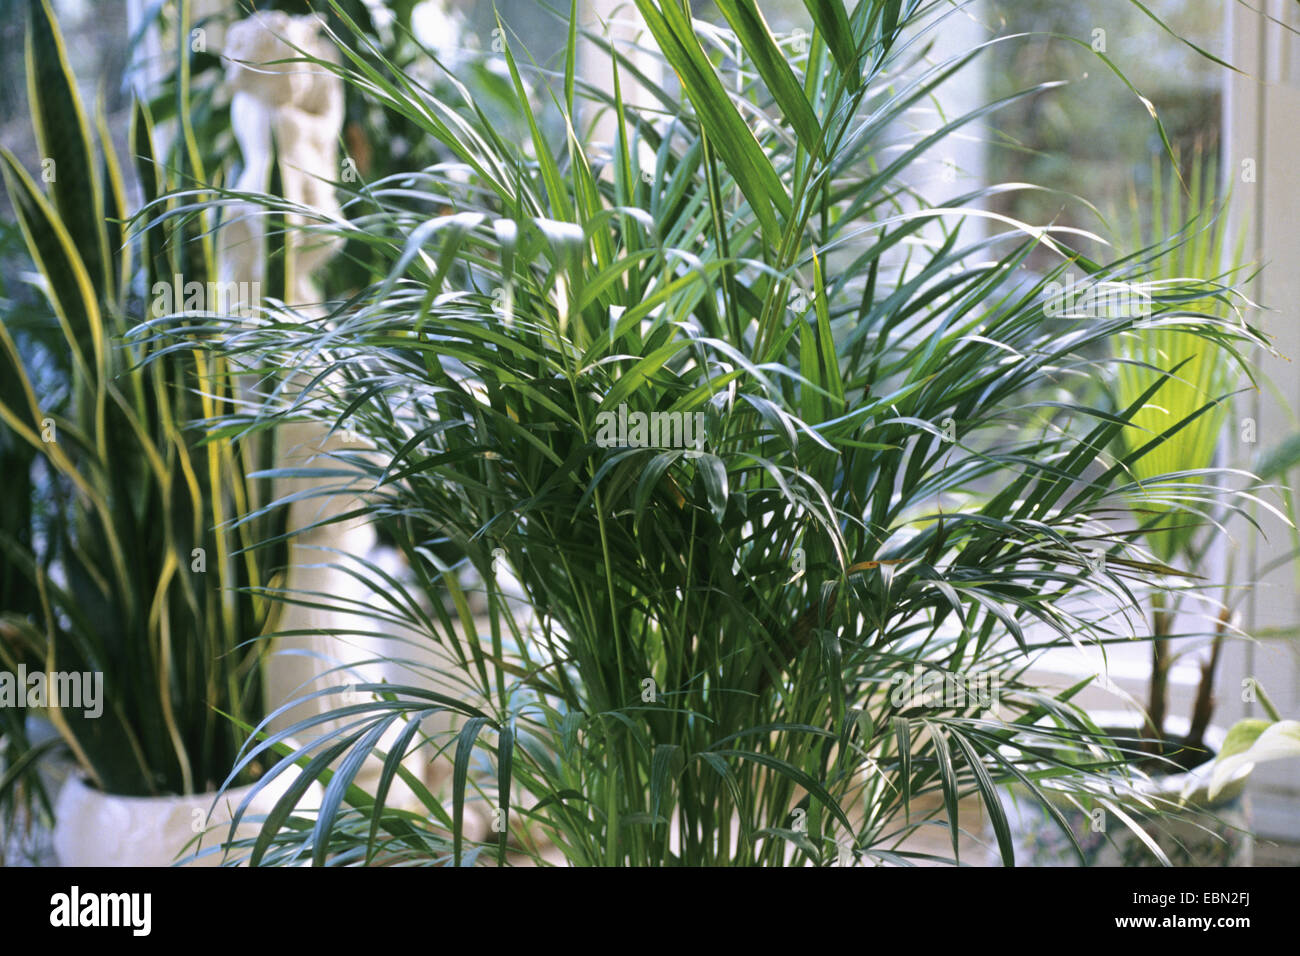 Chrysalidocarpus Space For Life Areca Palm Stock Photos Areca Palm Stock Images Alamy